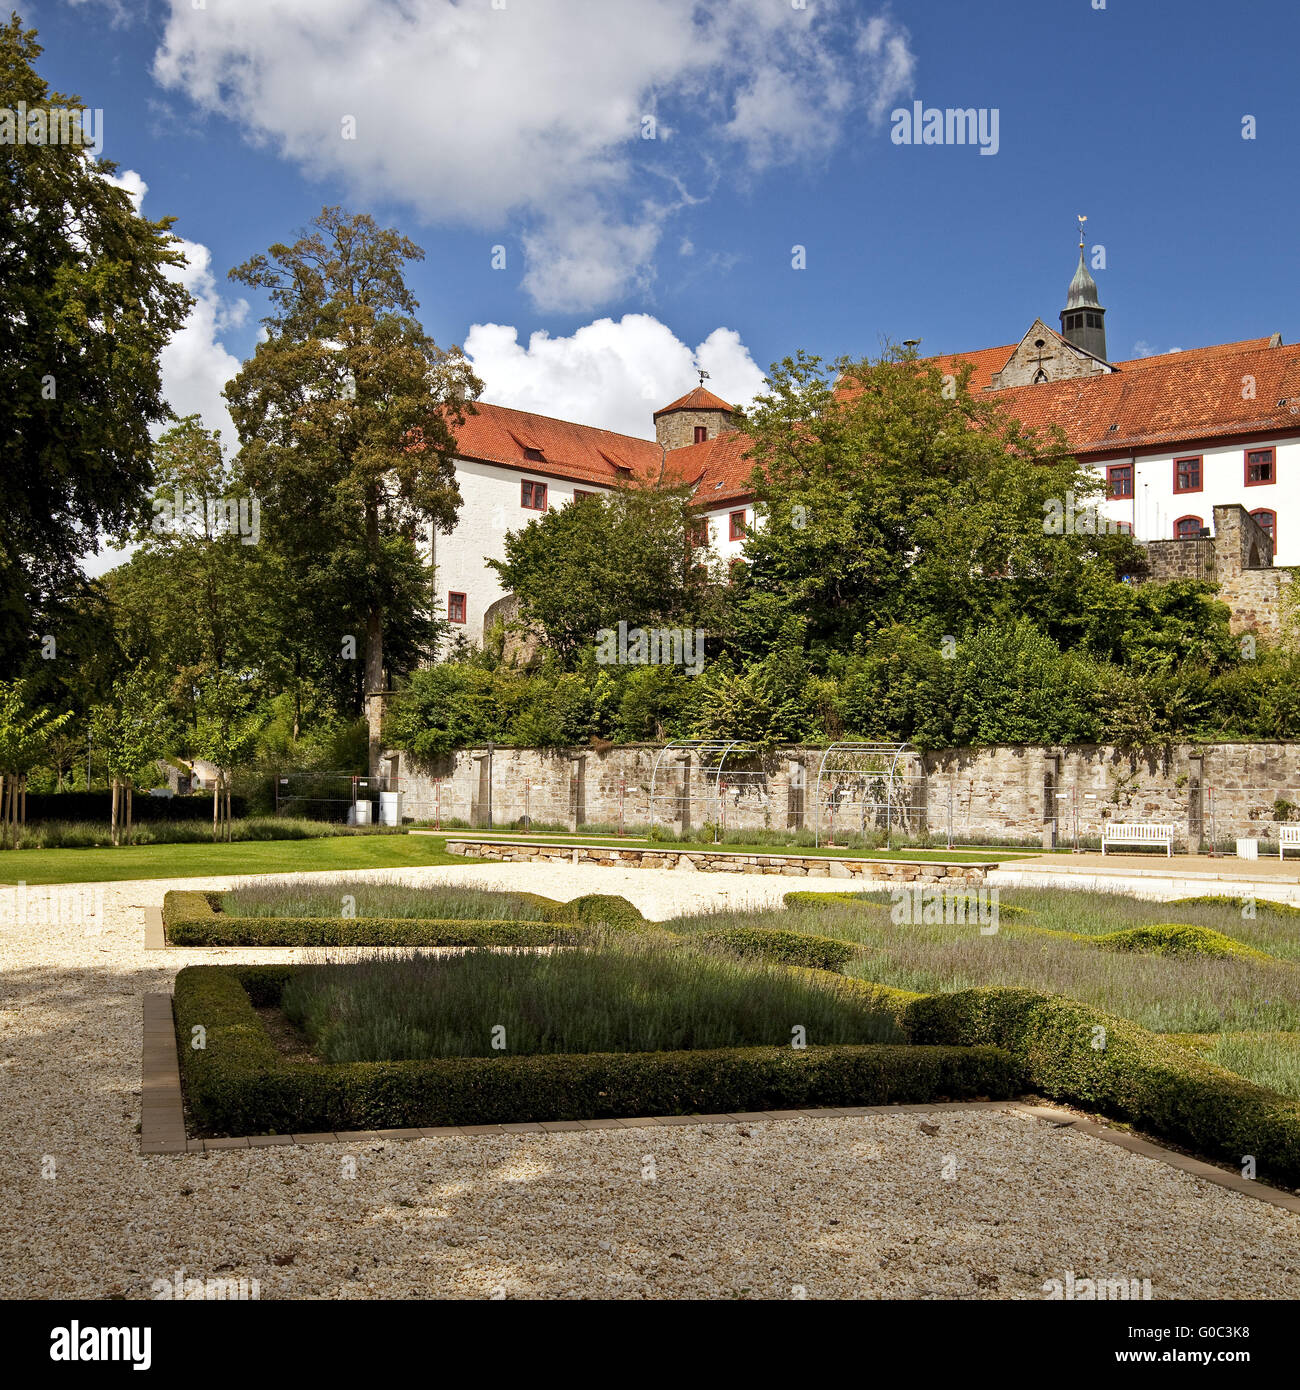 Castle and Abbey Iburg, Germany Stock Photo